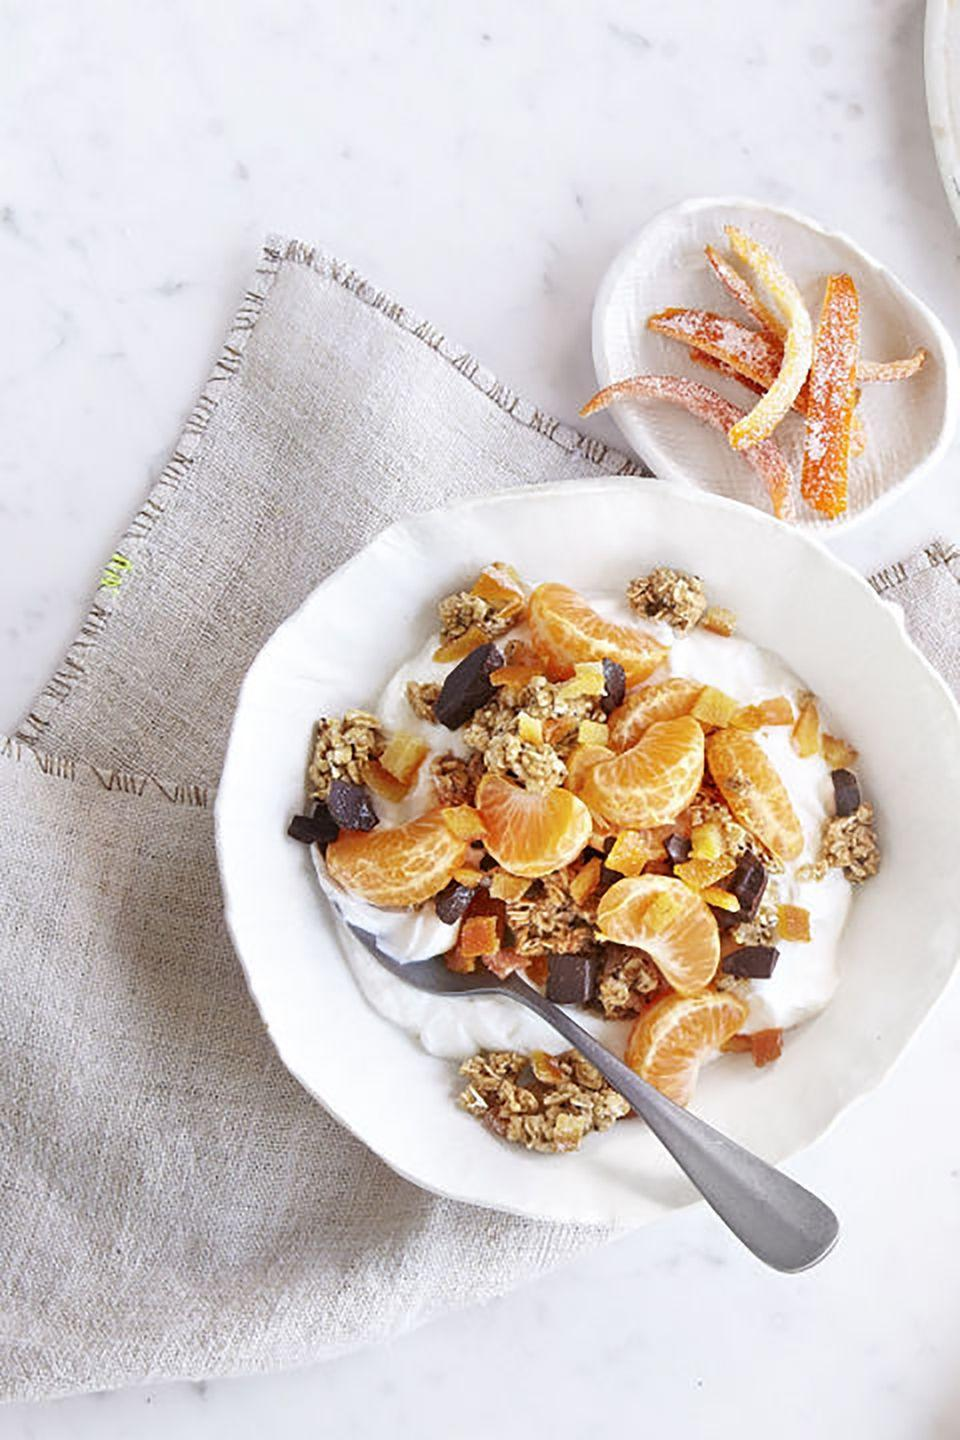 """<p>Surprise mom with this simple but special granola to start her day. Sliced clementines and dark chocolate pieces add to its sweetness!</p><p><strong><a href=""""https://www.countryliving.com/food-drinks/recipes/a41070/candied-orange-peel-granola/"""" rel=""""nofollow noopener"""" target=""""_blank"""" data-ylk=""""slk:Get the recipe"""" class=""""link rapid-noclick-resp"""">Get the recipe</a>.</strong></p><p><a class=""""link rapid-noclick-resp"""" href=""""https://www.amazon.com/Home-table-folding-breakfast-Bamboo/dp/B00PHS97EU/?tag=syn-yahoo-20&ascsubtag=%5Bartid%7C10050.g.1681%5Bsrc%7Cyahoo-us"""" rel=""""nofollow noopener"""" target=""""_blank"""" data-ylk=""""slk:SHOP BREAKFAST TRAYS"""">SHOP BREAKFAST TRAYS</a></p>"""